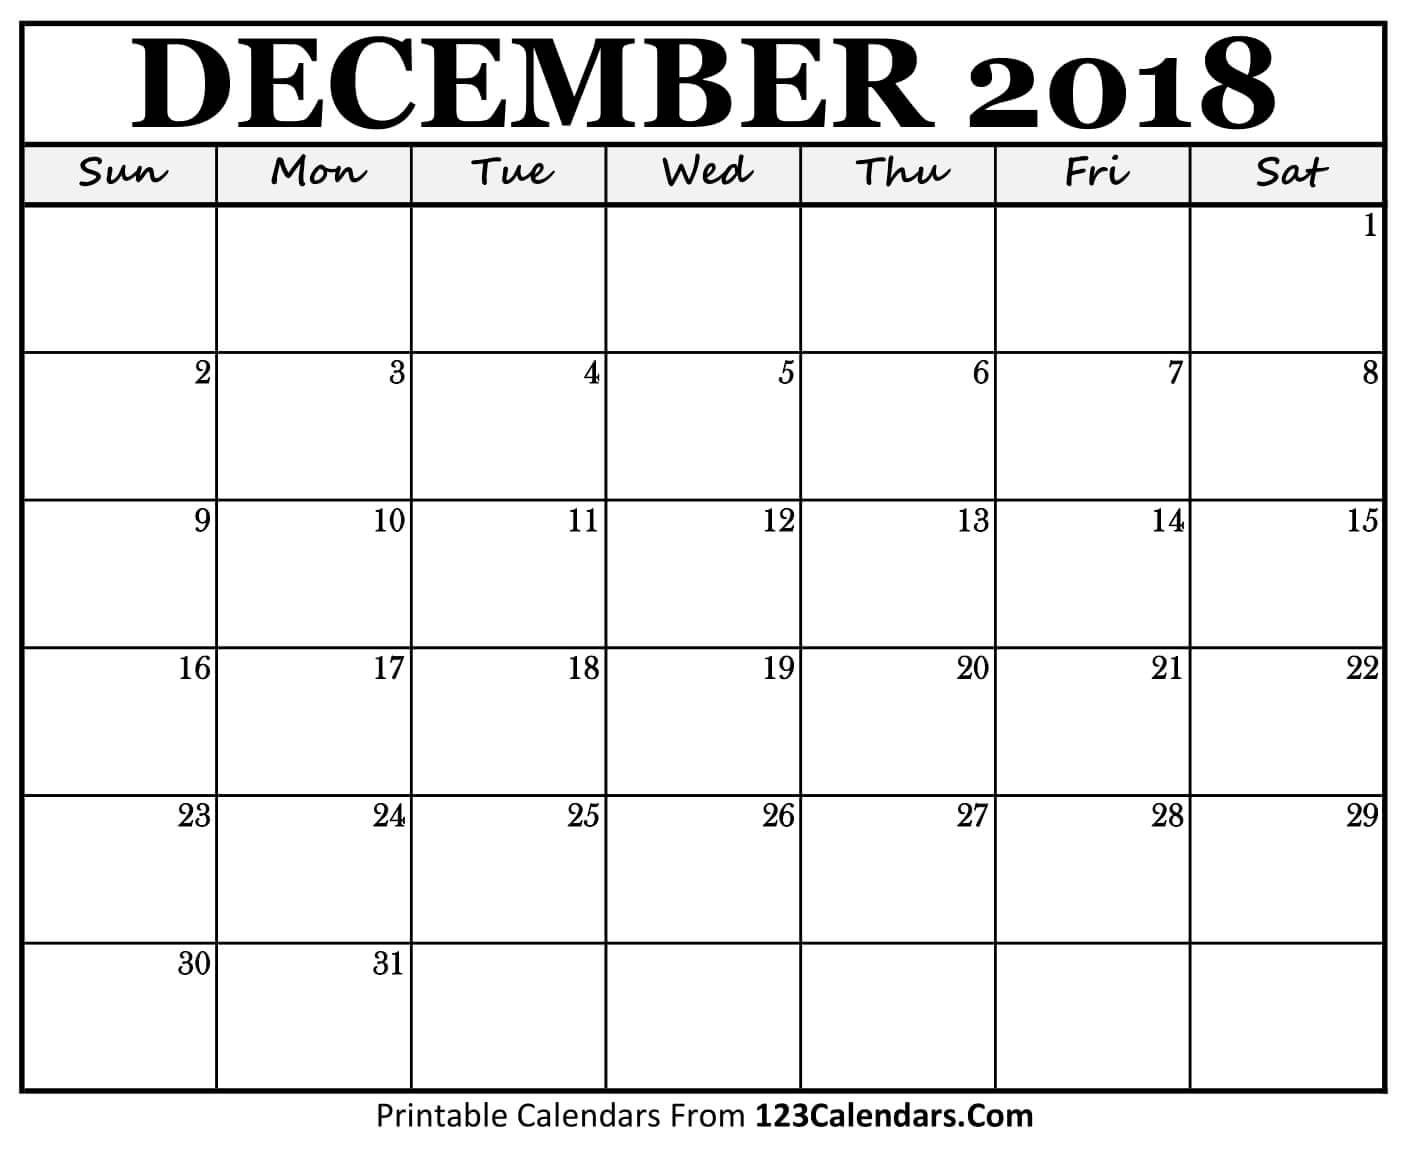 Monthly Calendar December 2018 Template Free Download with Blank Monthly Calendar Dec